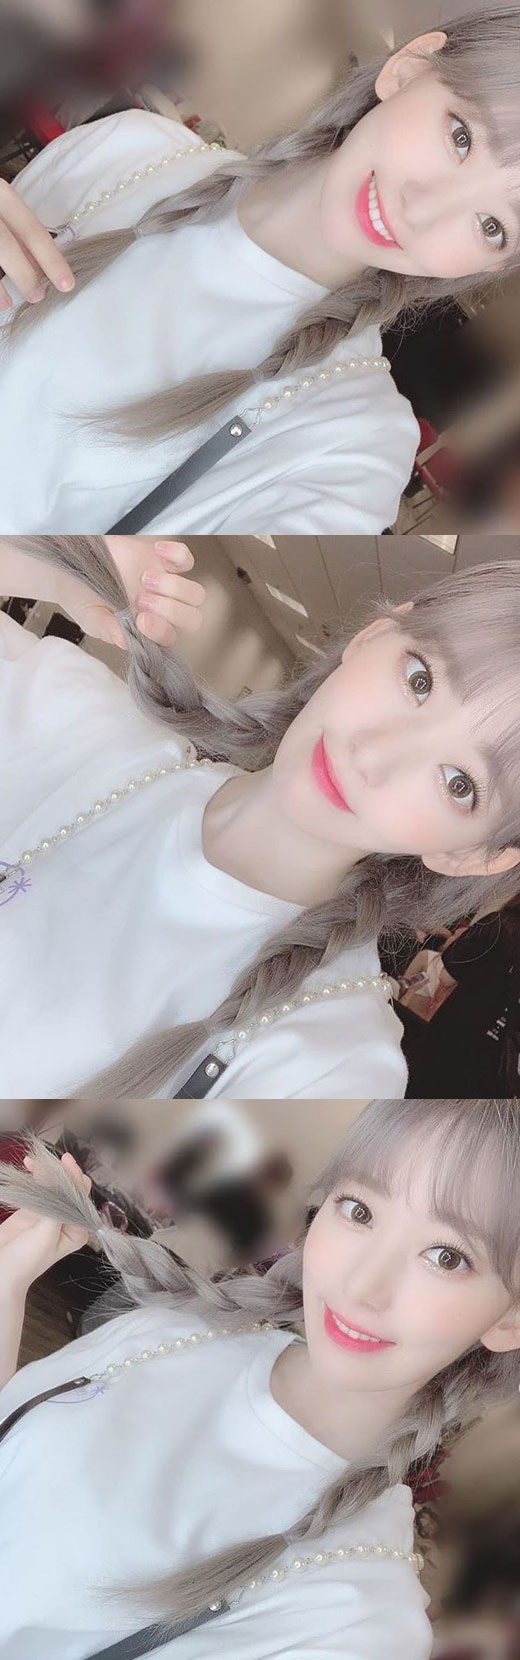 <p> Within a group Izone member of the Mana Sakura with cute sheep go head to digest.</p><p>Mana Sakura is a 14 Izone official Instagram to Hong Kong thank you~Asia tour already last, it is so fleeting, I guess. . . ! Left Japan Tour! Expect the way.~~that, along with a number of photos showing.</p><p>The picture Mana Sakura is a mutton head to hold the pigtails into a different style more than anything. A particularly clear visage and pure atmosphere eye-catching.</p><p>This present netizen the angel appeared, so cute, long hair goes to variety of comments left behind.</p><p>Meanwhile Seoul last month, starting with Thailand, Taiwan in consecutive solo concert the child comes to us(EYES ON ME)to be held Izone offers 8-21, Japan Makuhari Messe, 9 April 1 of the Kobe world Memorial Hall, 8, Fukuoka Marine Messe, 25 in Saitama Super Arena in sequential order as the performances go plan.</p>